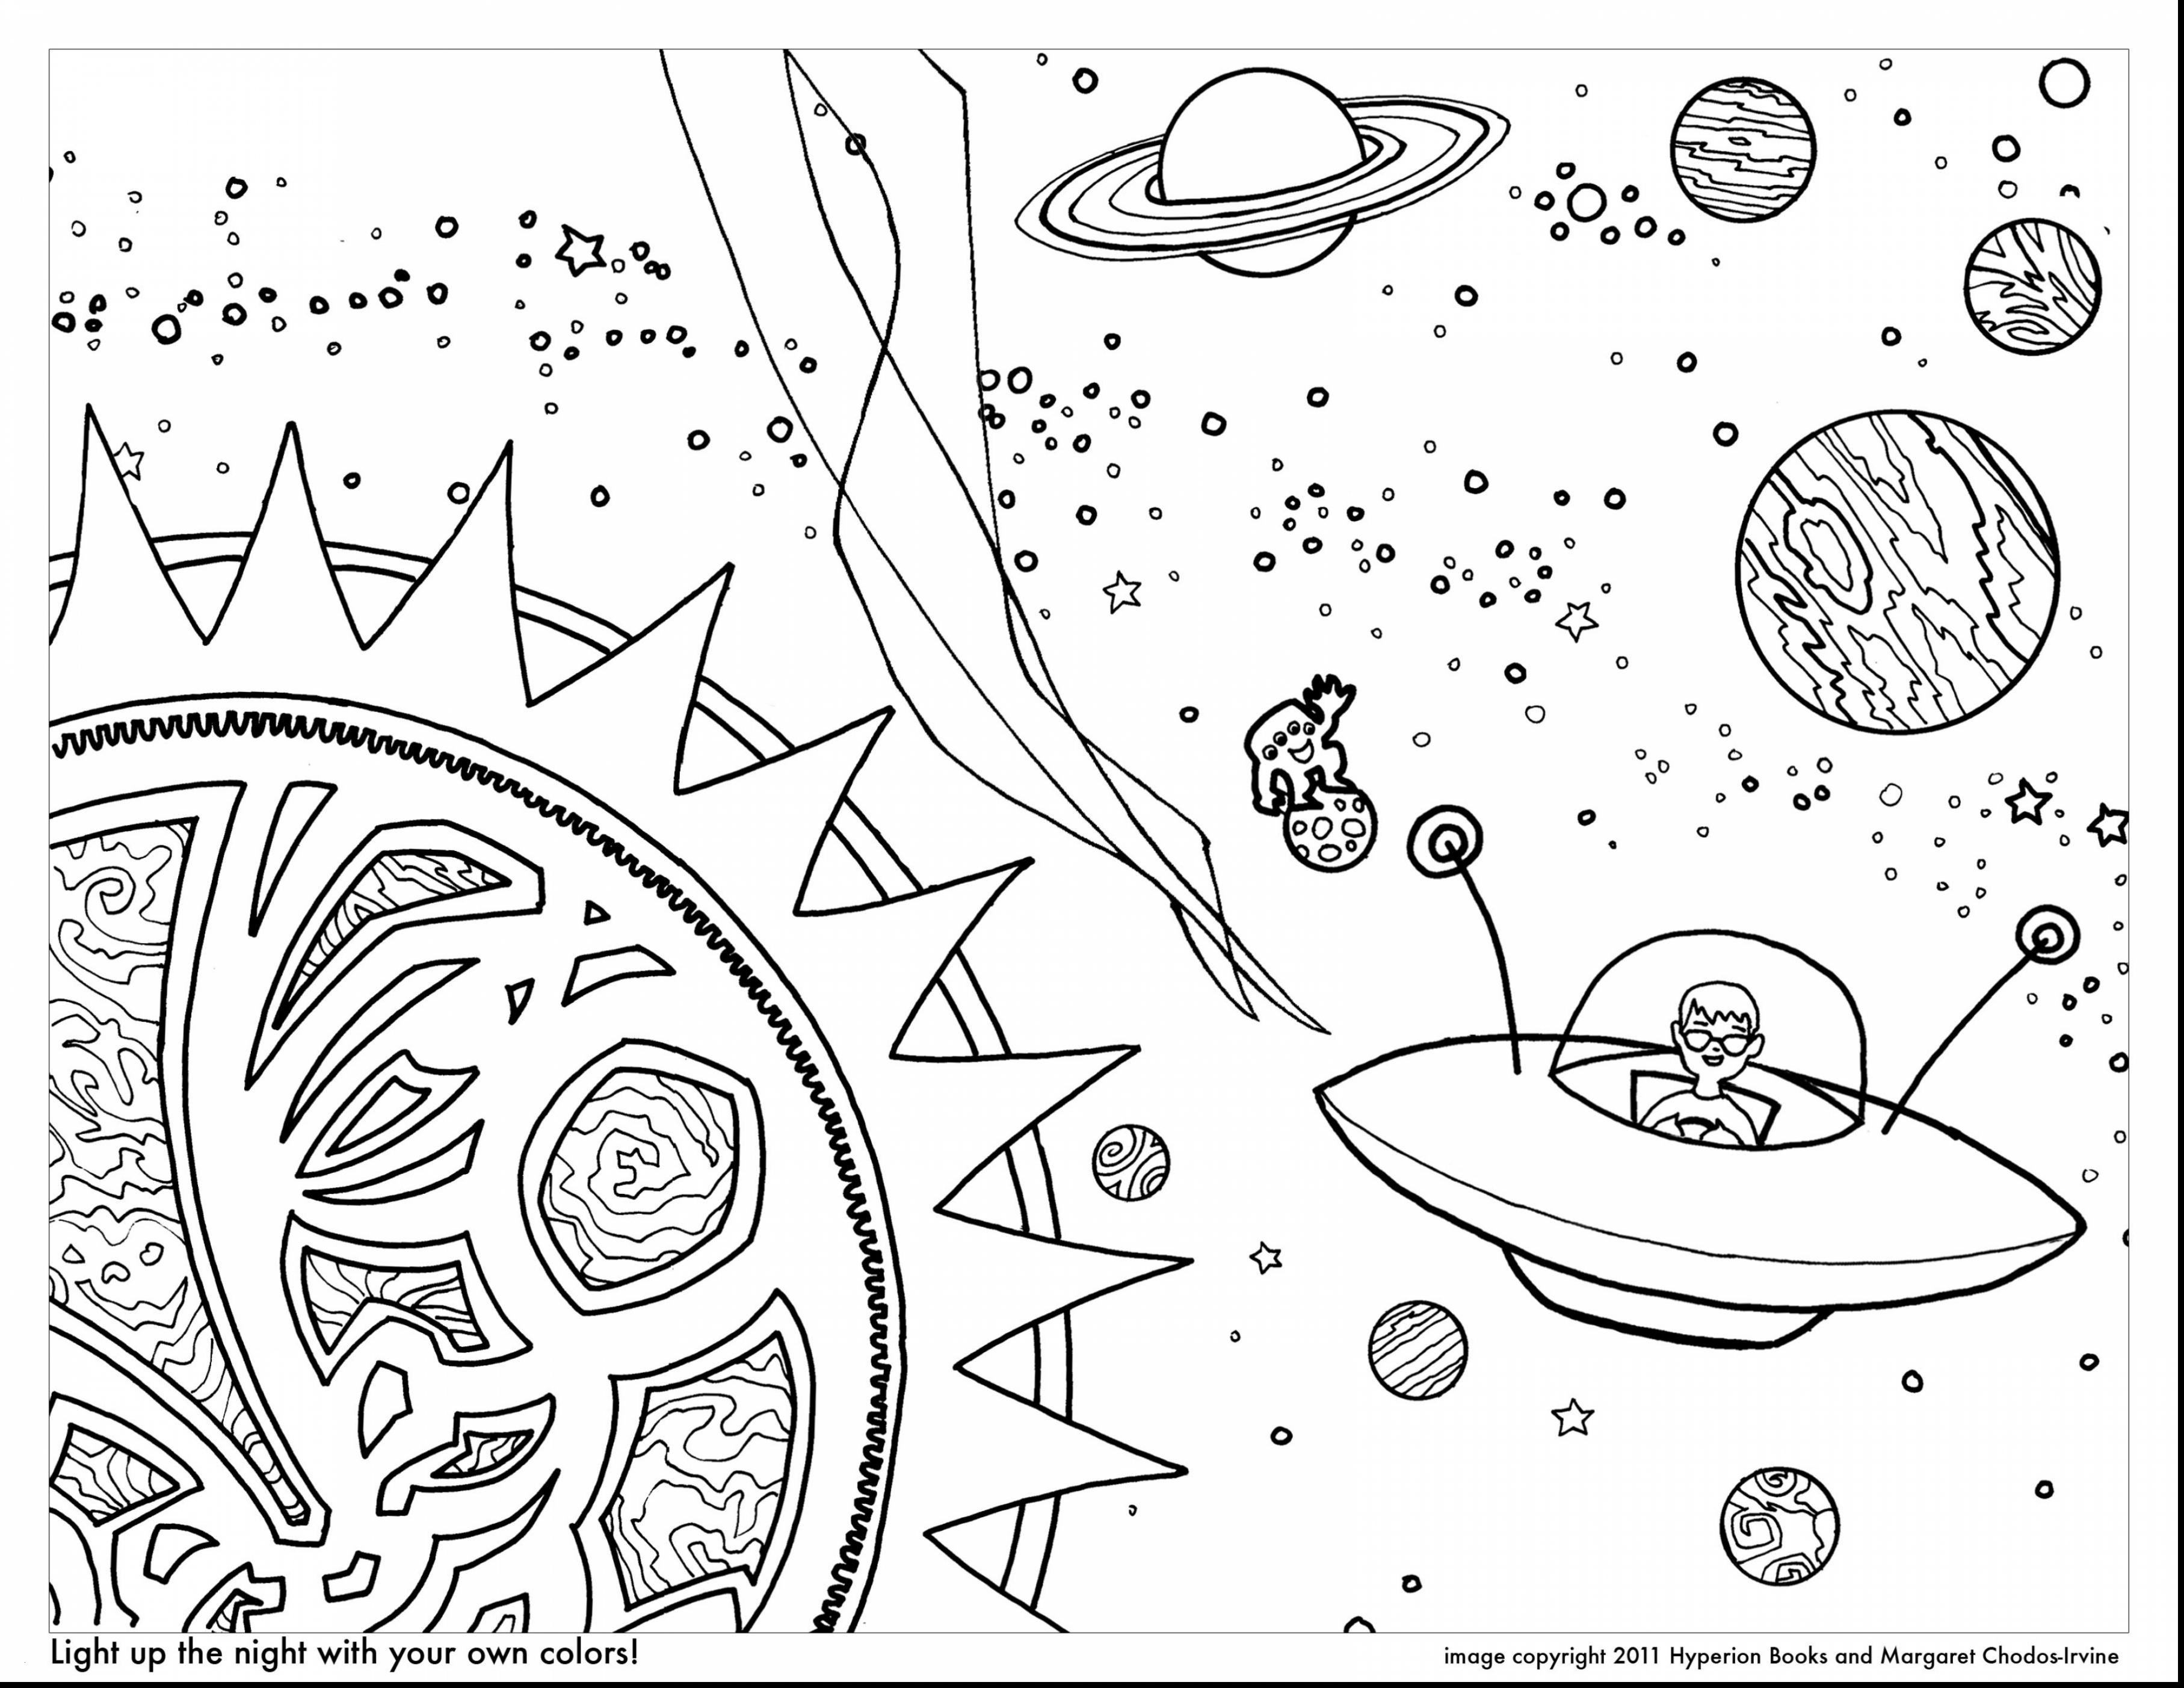 Solar System Planets Coloring Pages  to Print 1r - Free For kids